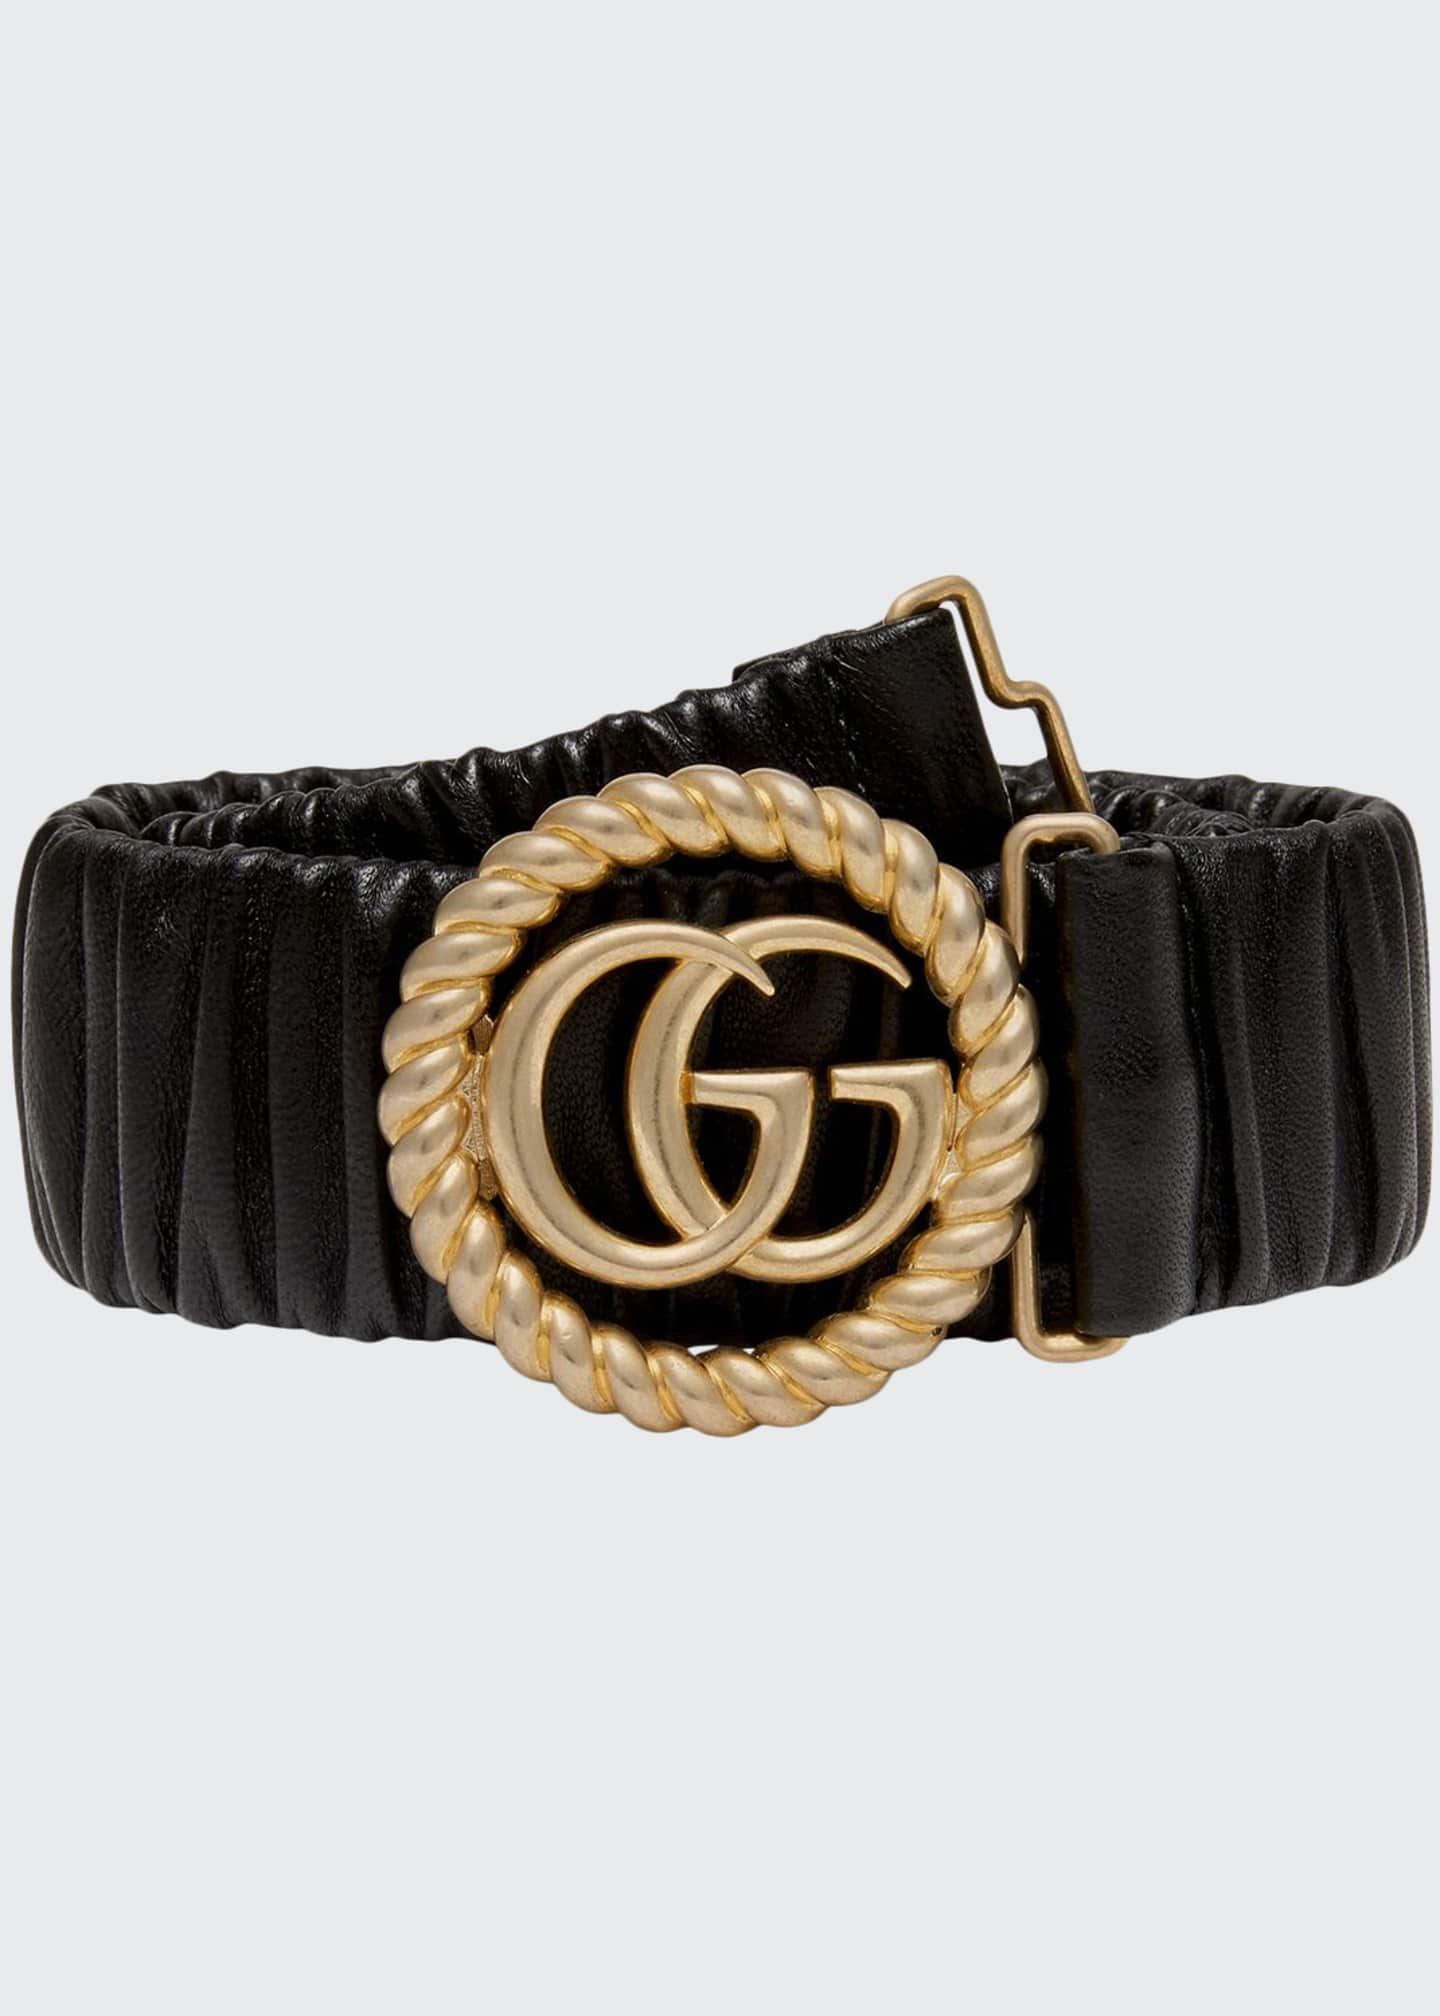 Gucci GG Ring Stretch Leather Belt